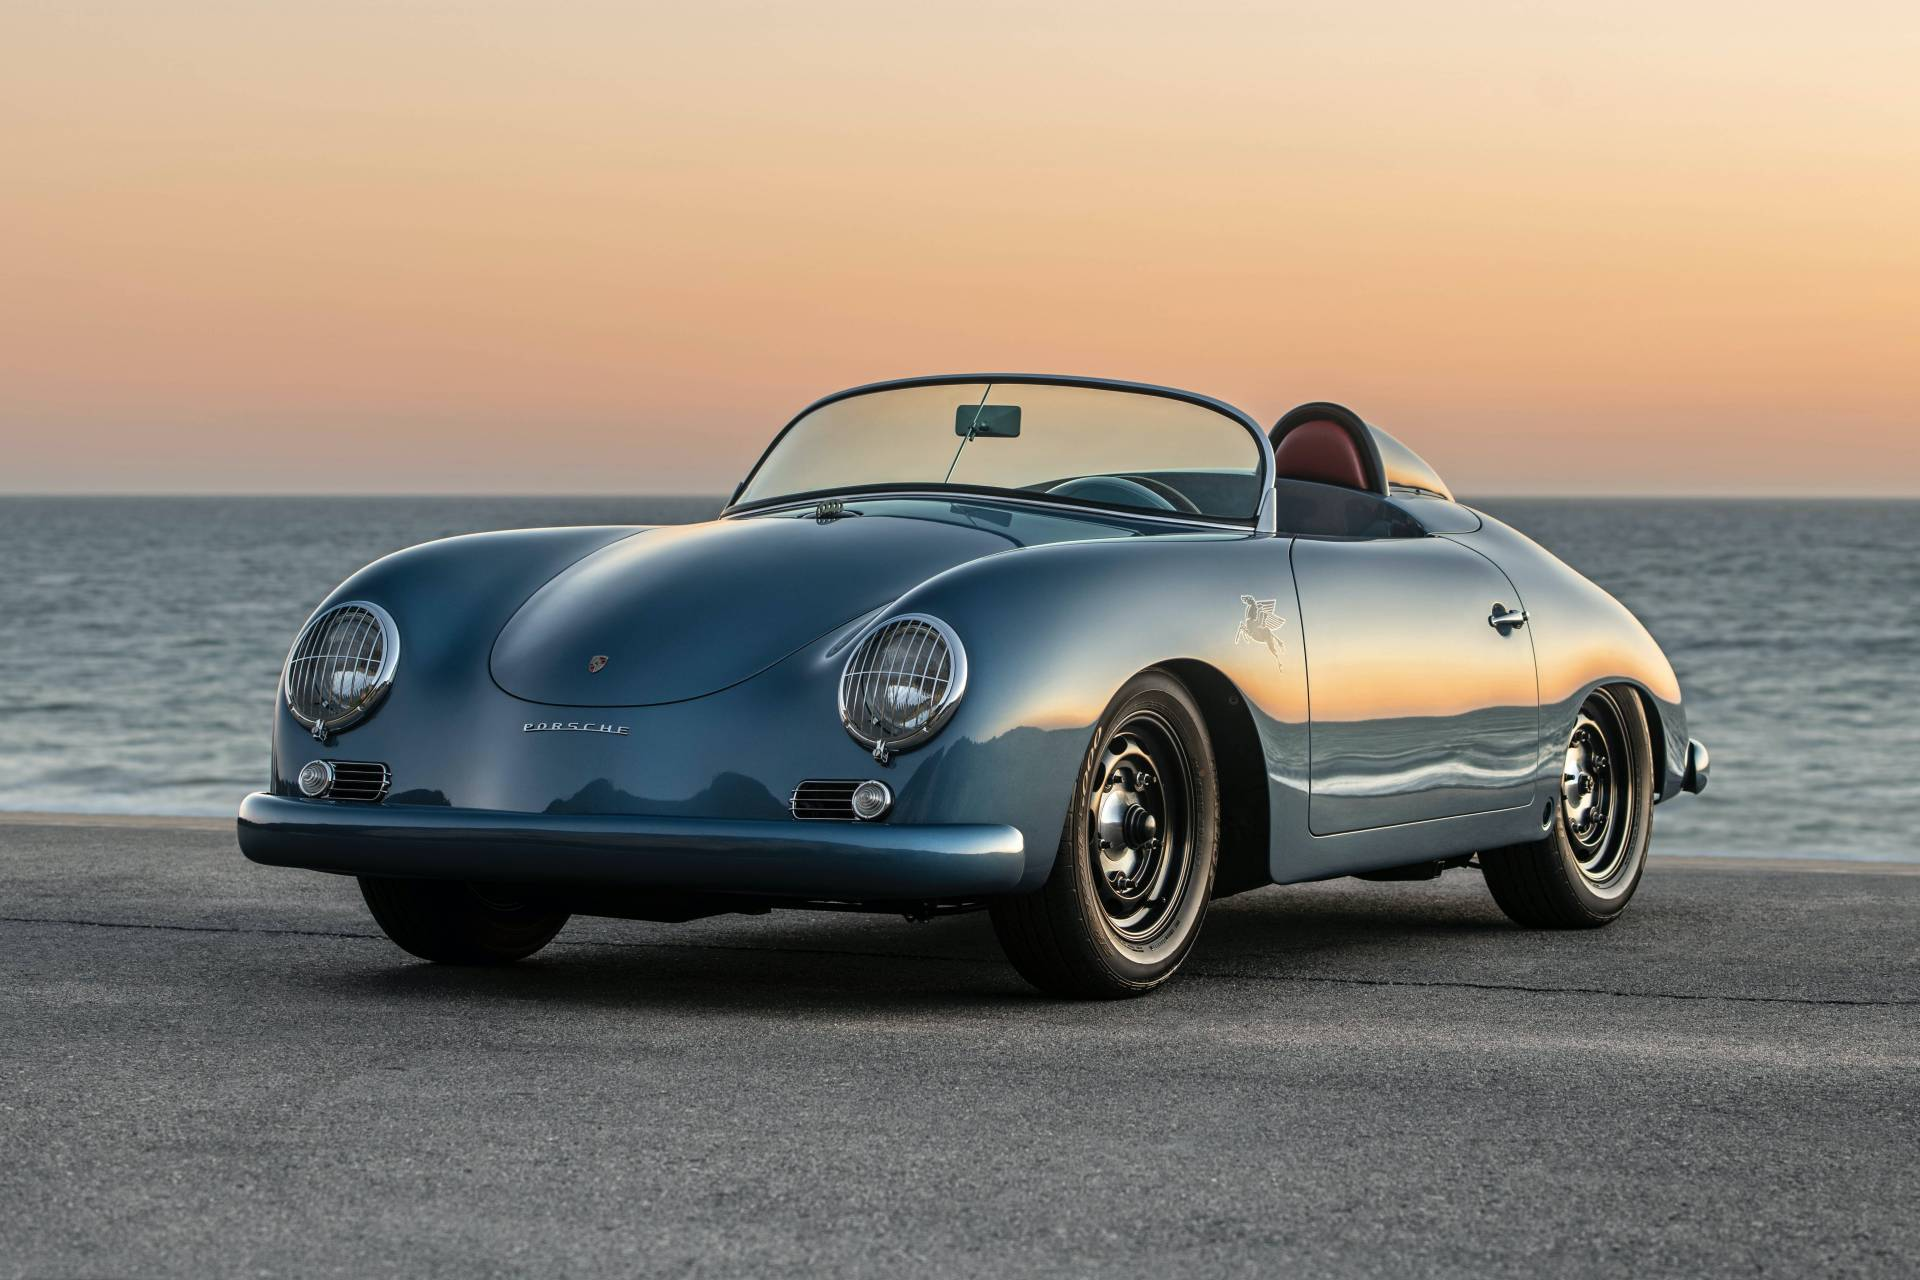 Porsche-356-Speedster-1959-Aquamarine-Transitional-By-Emory-Motorsport-7